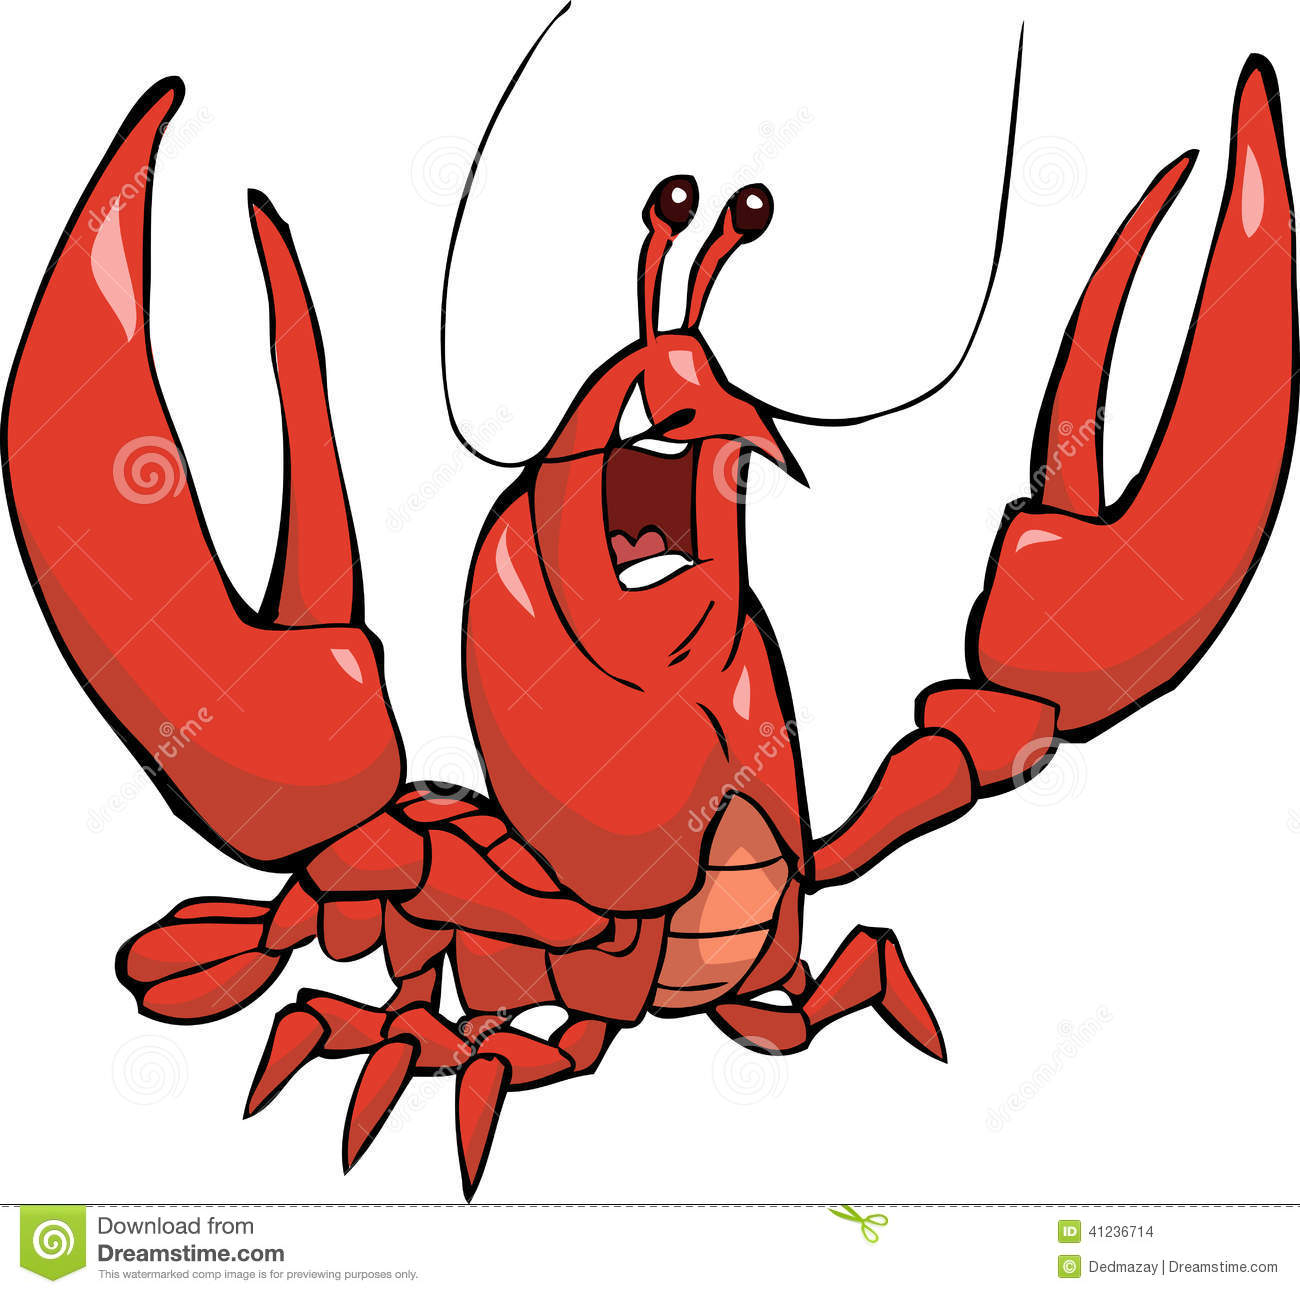 kr u00e4fta vektor illustrationer illustration av gulligt crawfish clip art images crawfish clipart pictures